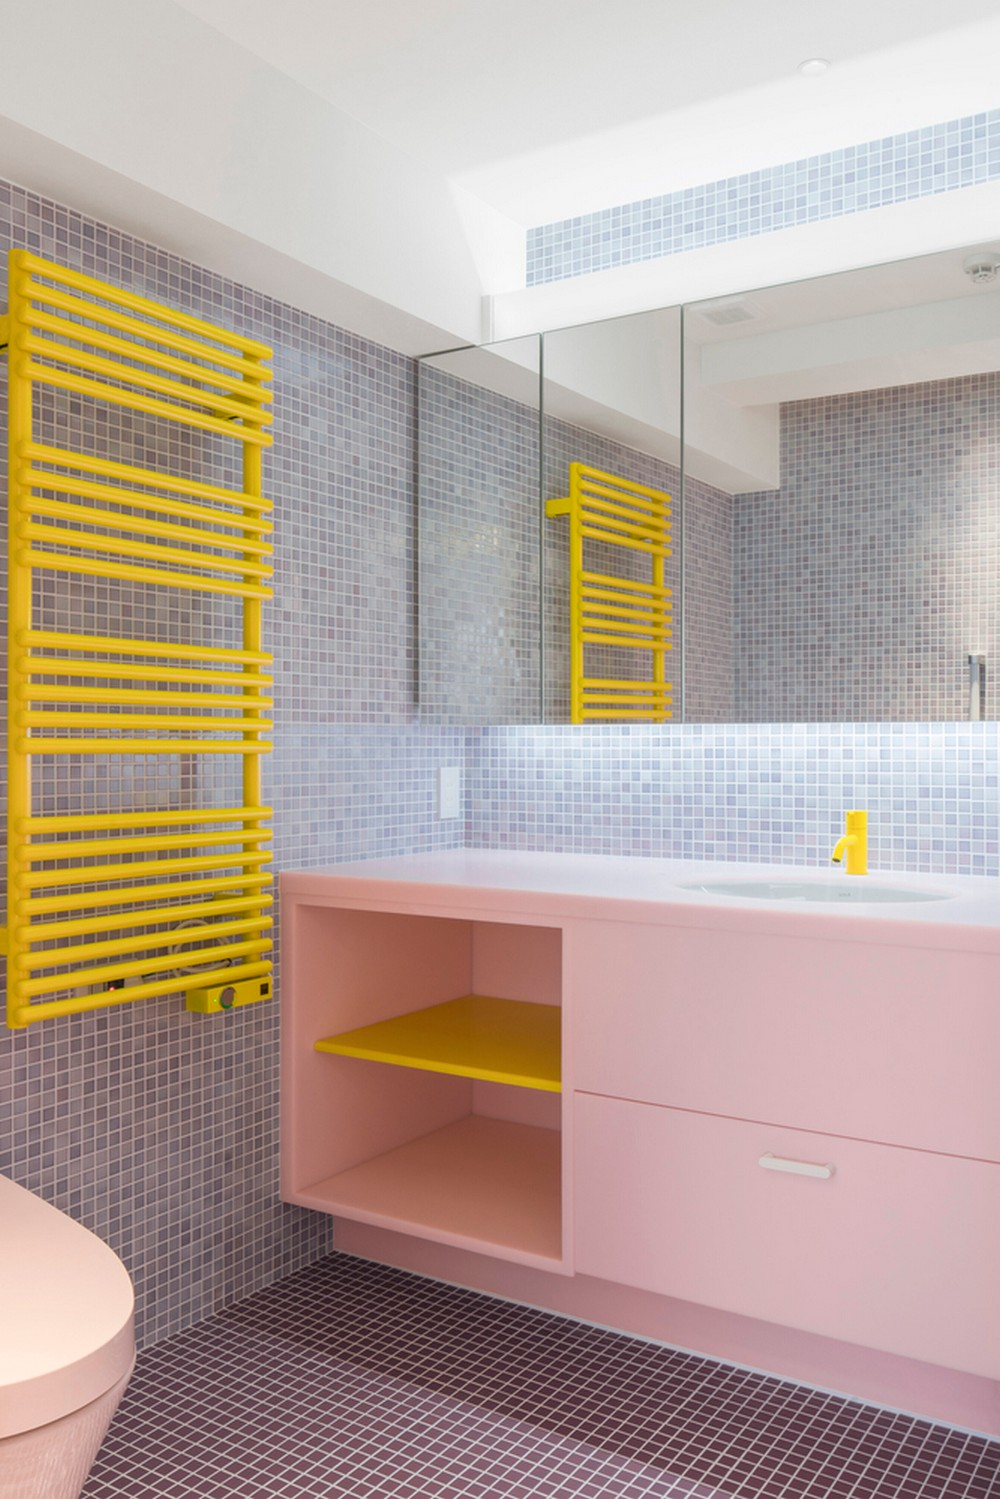 6 Design Trends that Will Be In Style for the Foreseeable Future 3 design trends 6 Design Trends that Will Be In Style for the Foreseeable Future 6 Design Trends that Will Be In Style for the Foreseeable Future 3